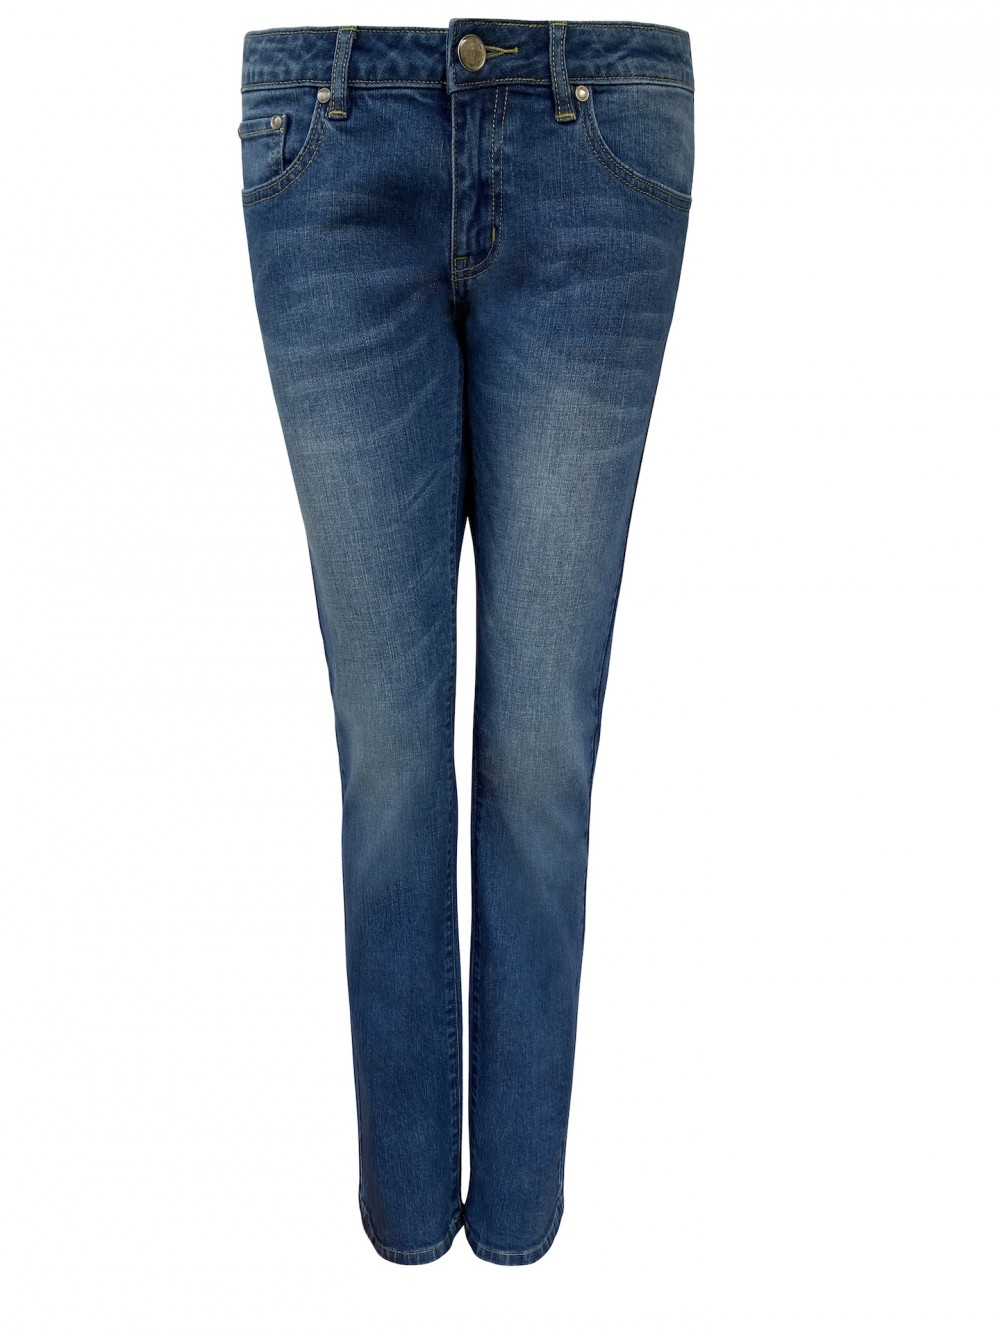 Womens Slim fit Jeans JSM317 G081 blue